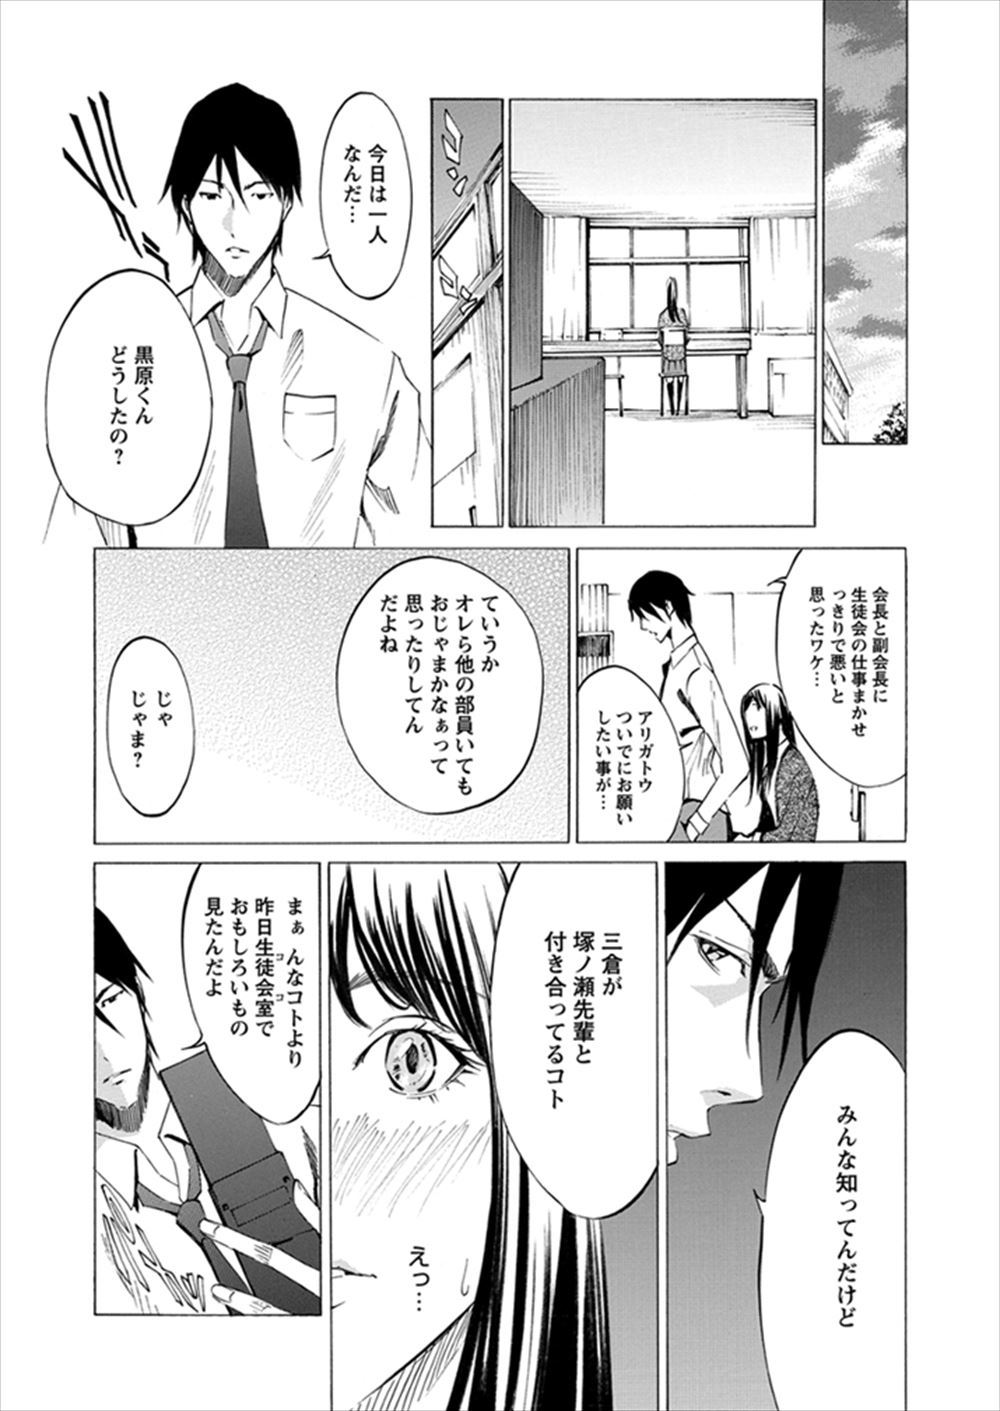 ずっと待ってるのに先輩はキス以上のことをしてこない。キスしてるところを盗撮してた好きでもない男子に処女を奪われてしまうJK!